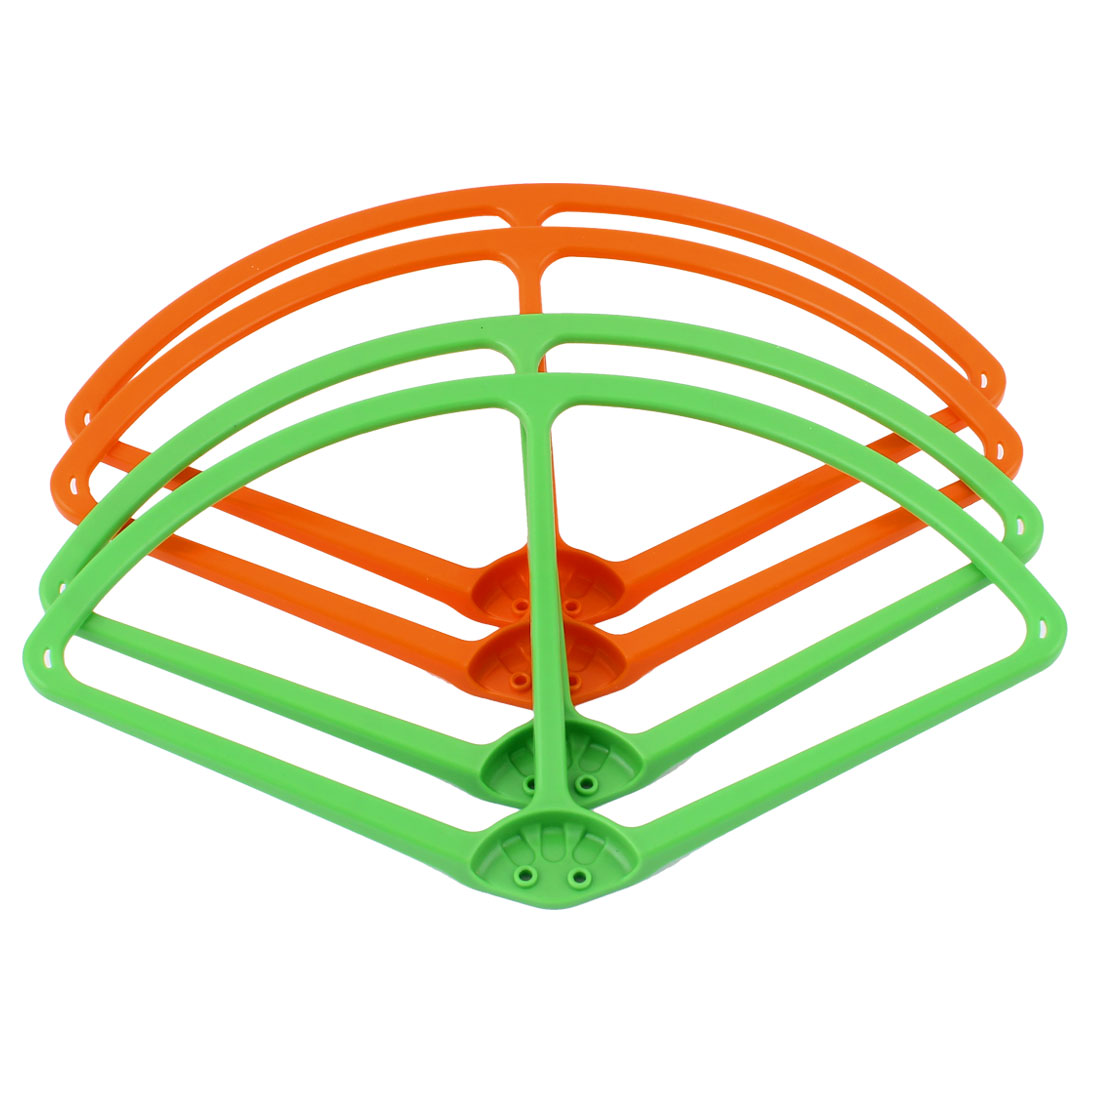 "9"" Propeller Blade Guard Bumper Set Orange Green for DJI Phantom 2 Vision"